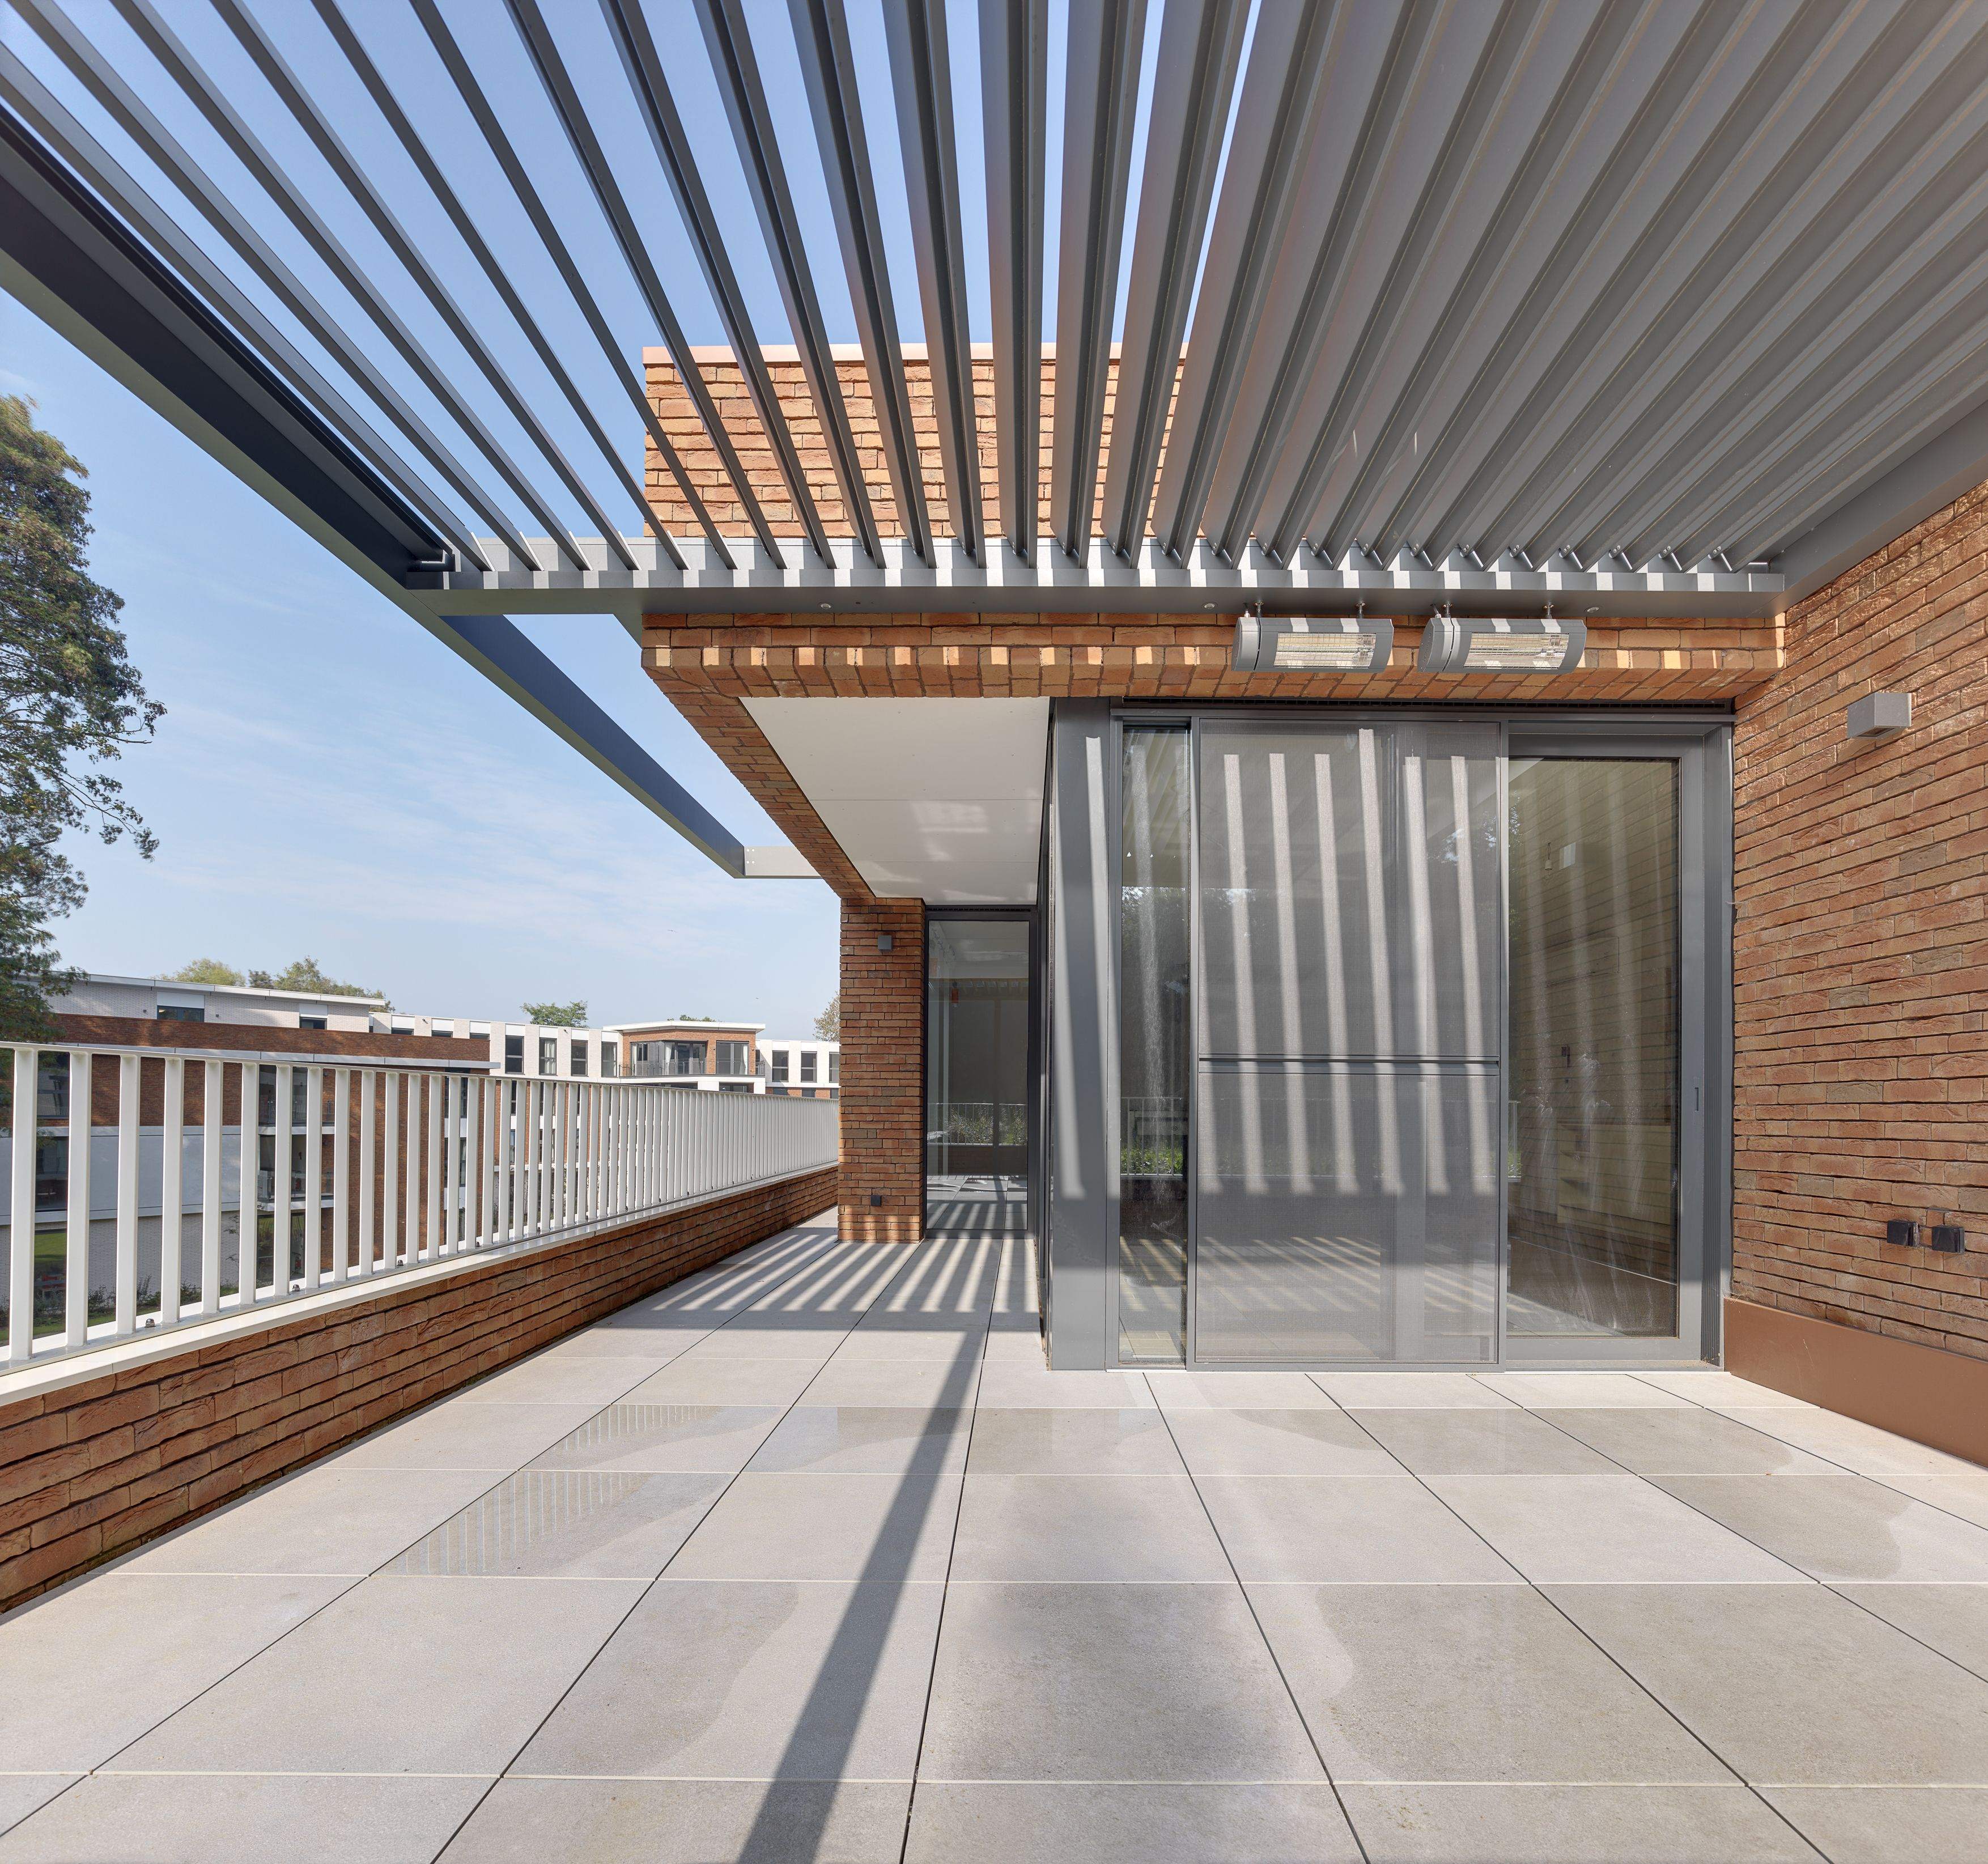 Iq Installed An Integrated Umbris Louvre Roof Onto The Terrace